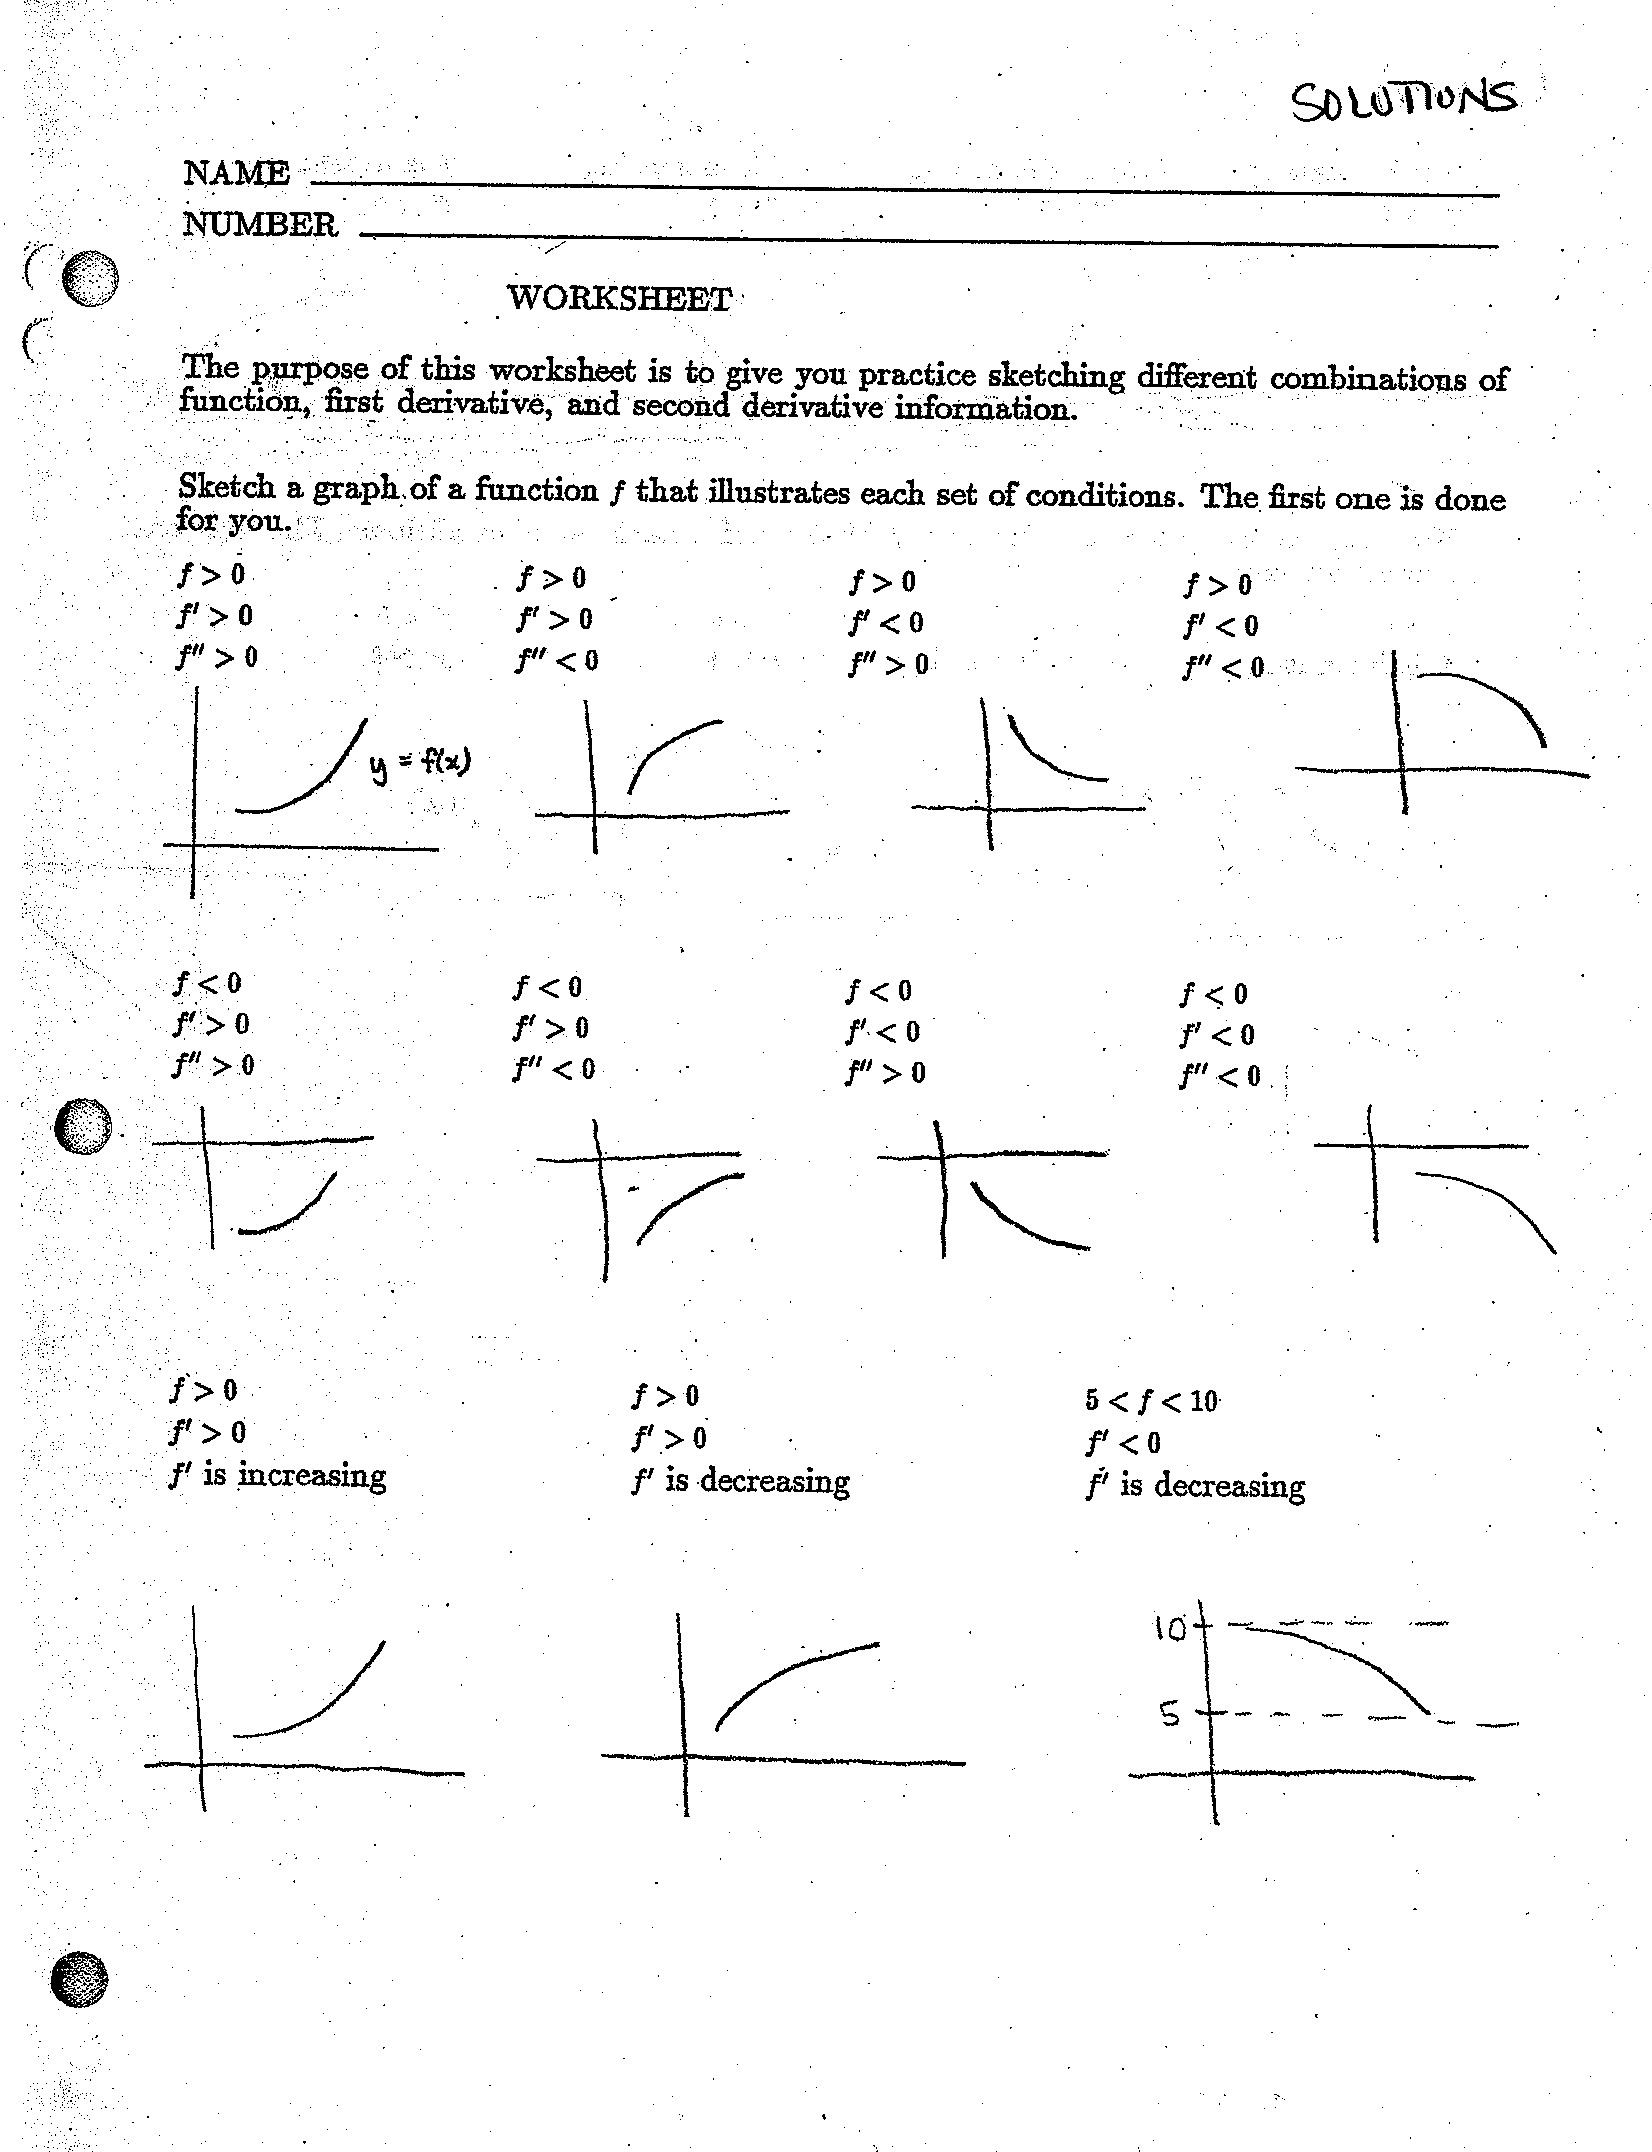 Worksheets End Behavior Worksheet calculus i mathematics daily syllabus derivative behavior worksheet solutions page 1